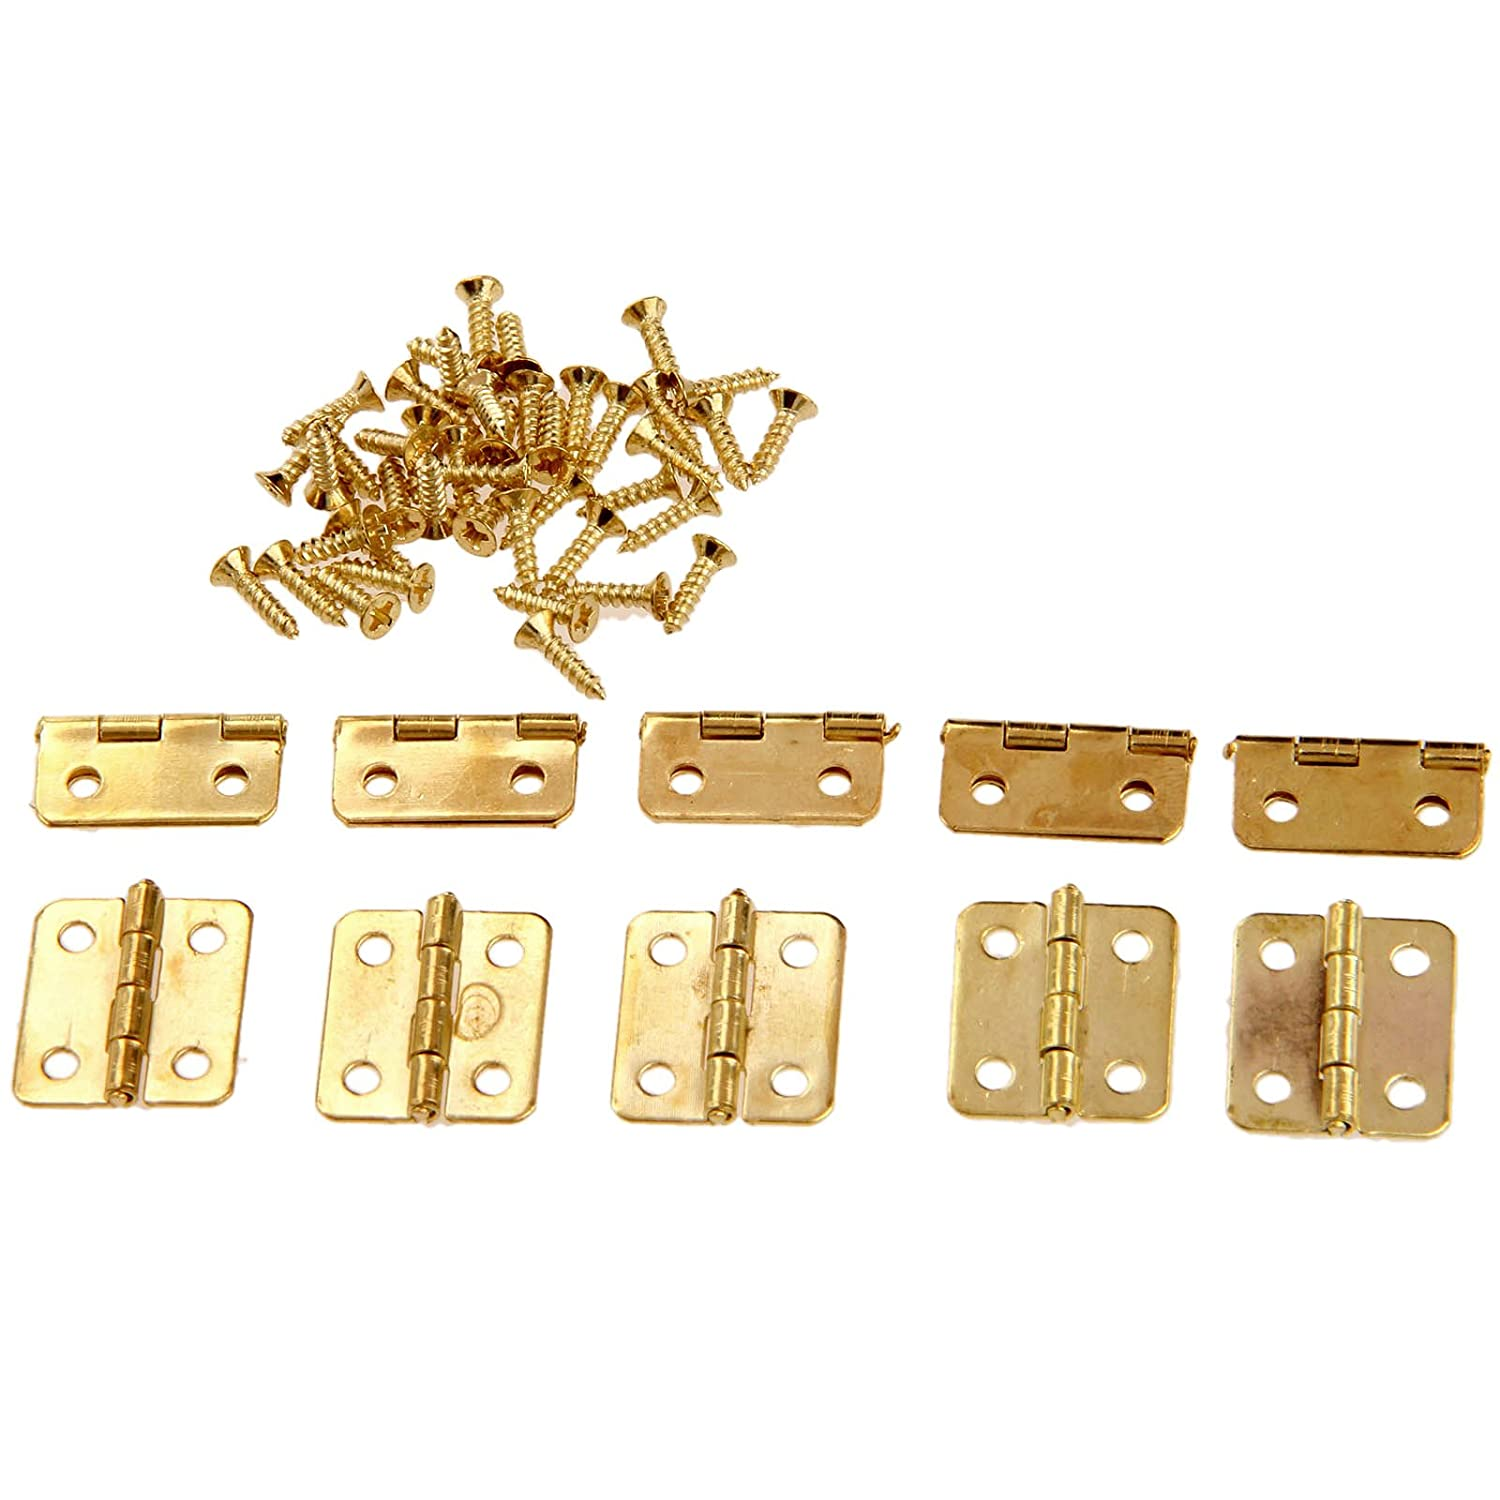 50pcs 0.71'x0.63' Gold Mini Hinge Jewellery Cigar Trinket Box Tiny Brushed Brass Gold Hinge Dophee